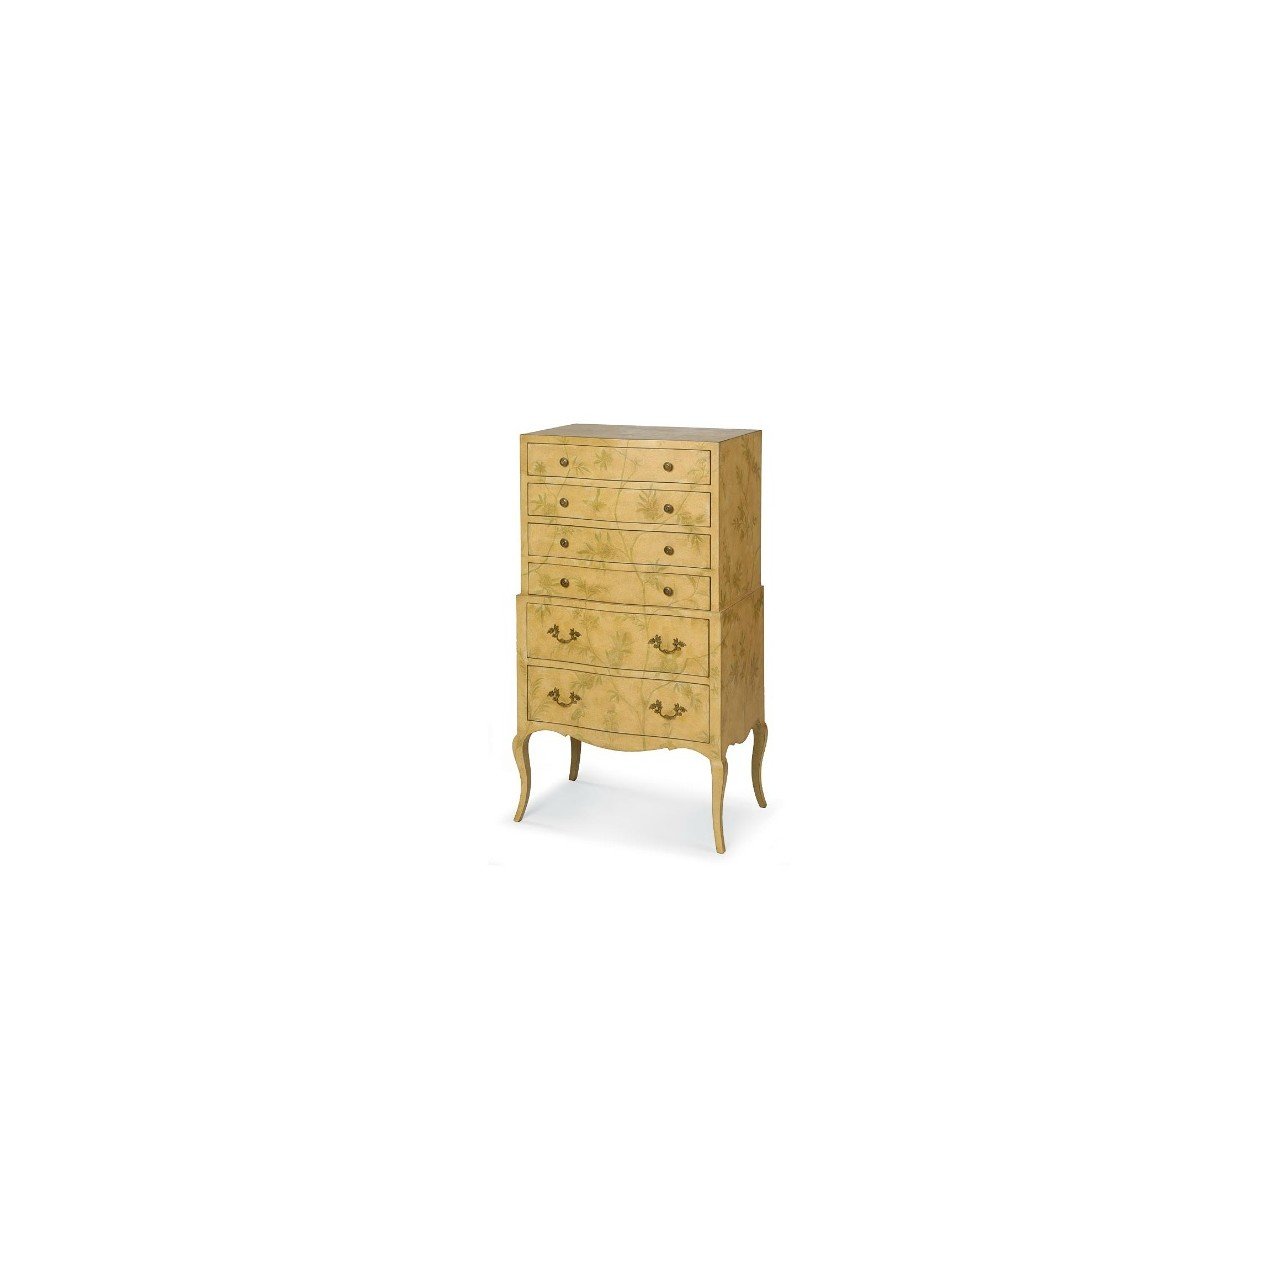 ORVIETO HIGHBOY